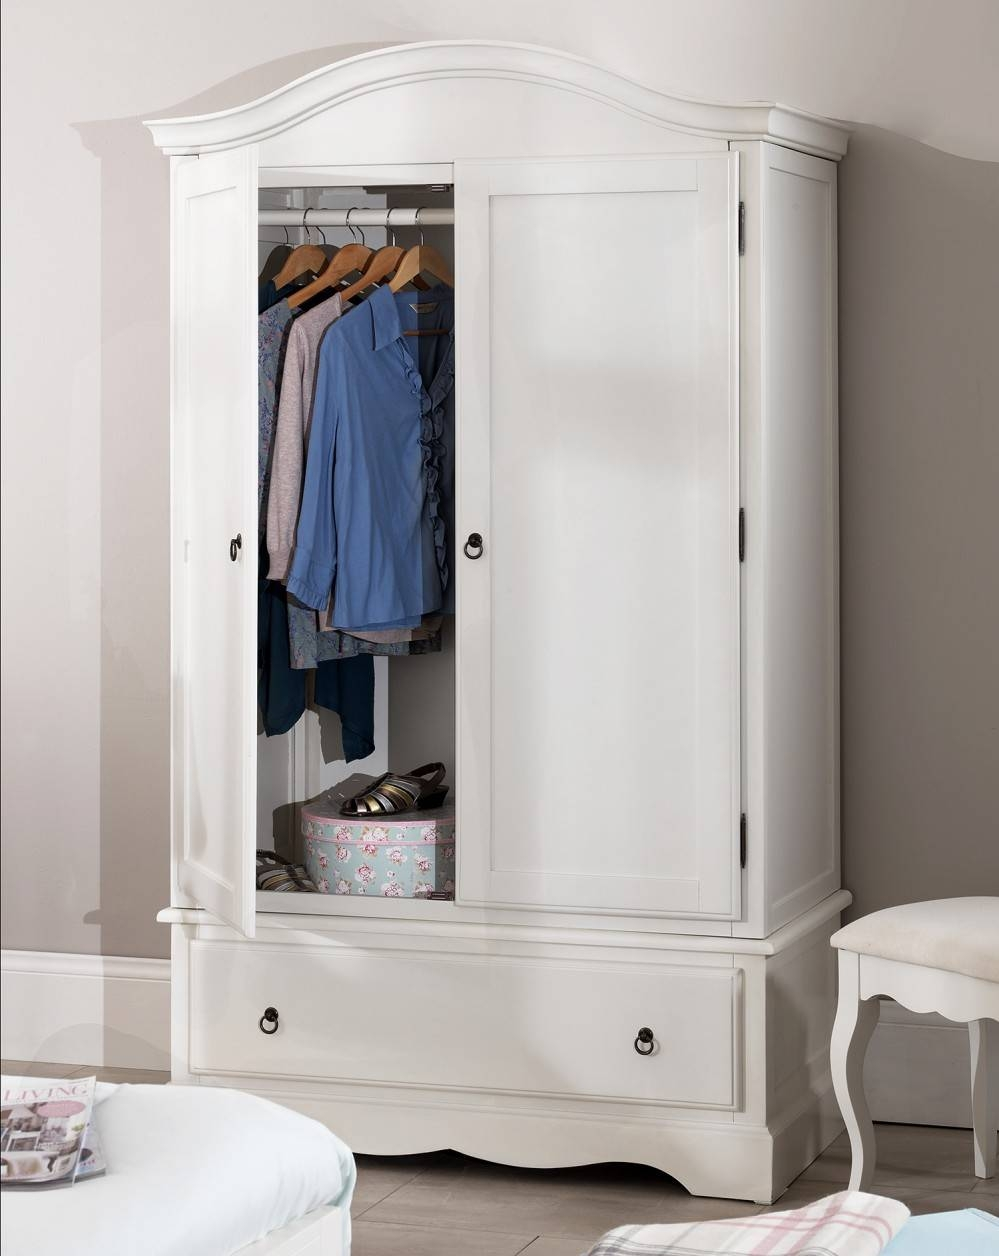 Romance Double Wardrobe, Stunning White Wardrobe With Deep Drawer regarding Double Rail Wardrobe With Drawers (Image 19 of 30)